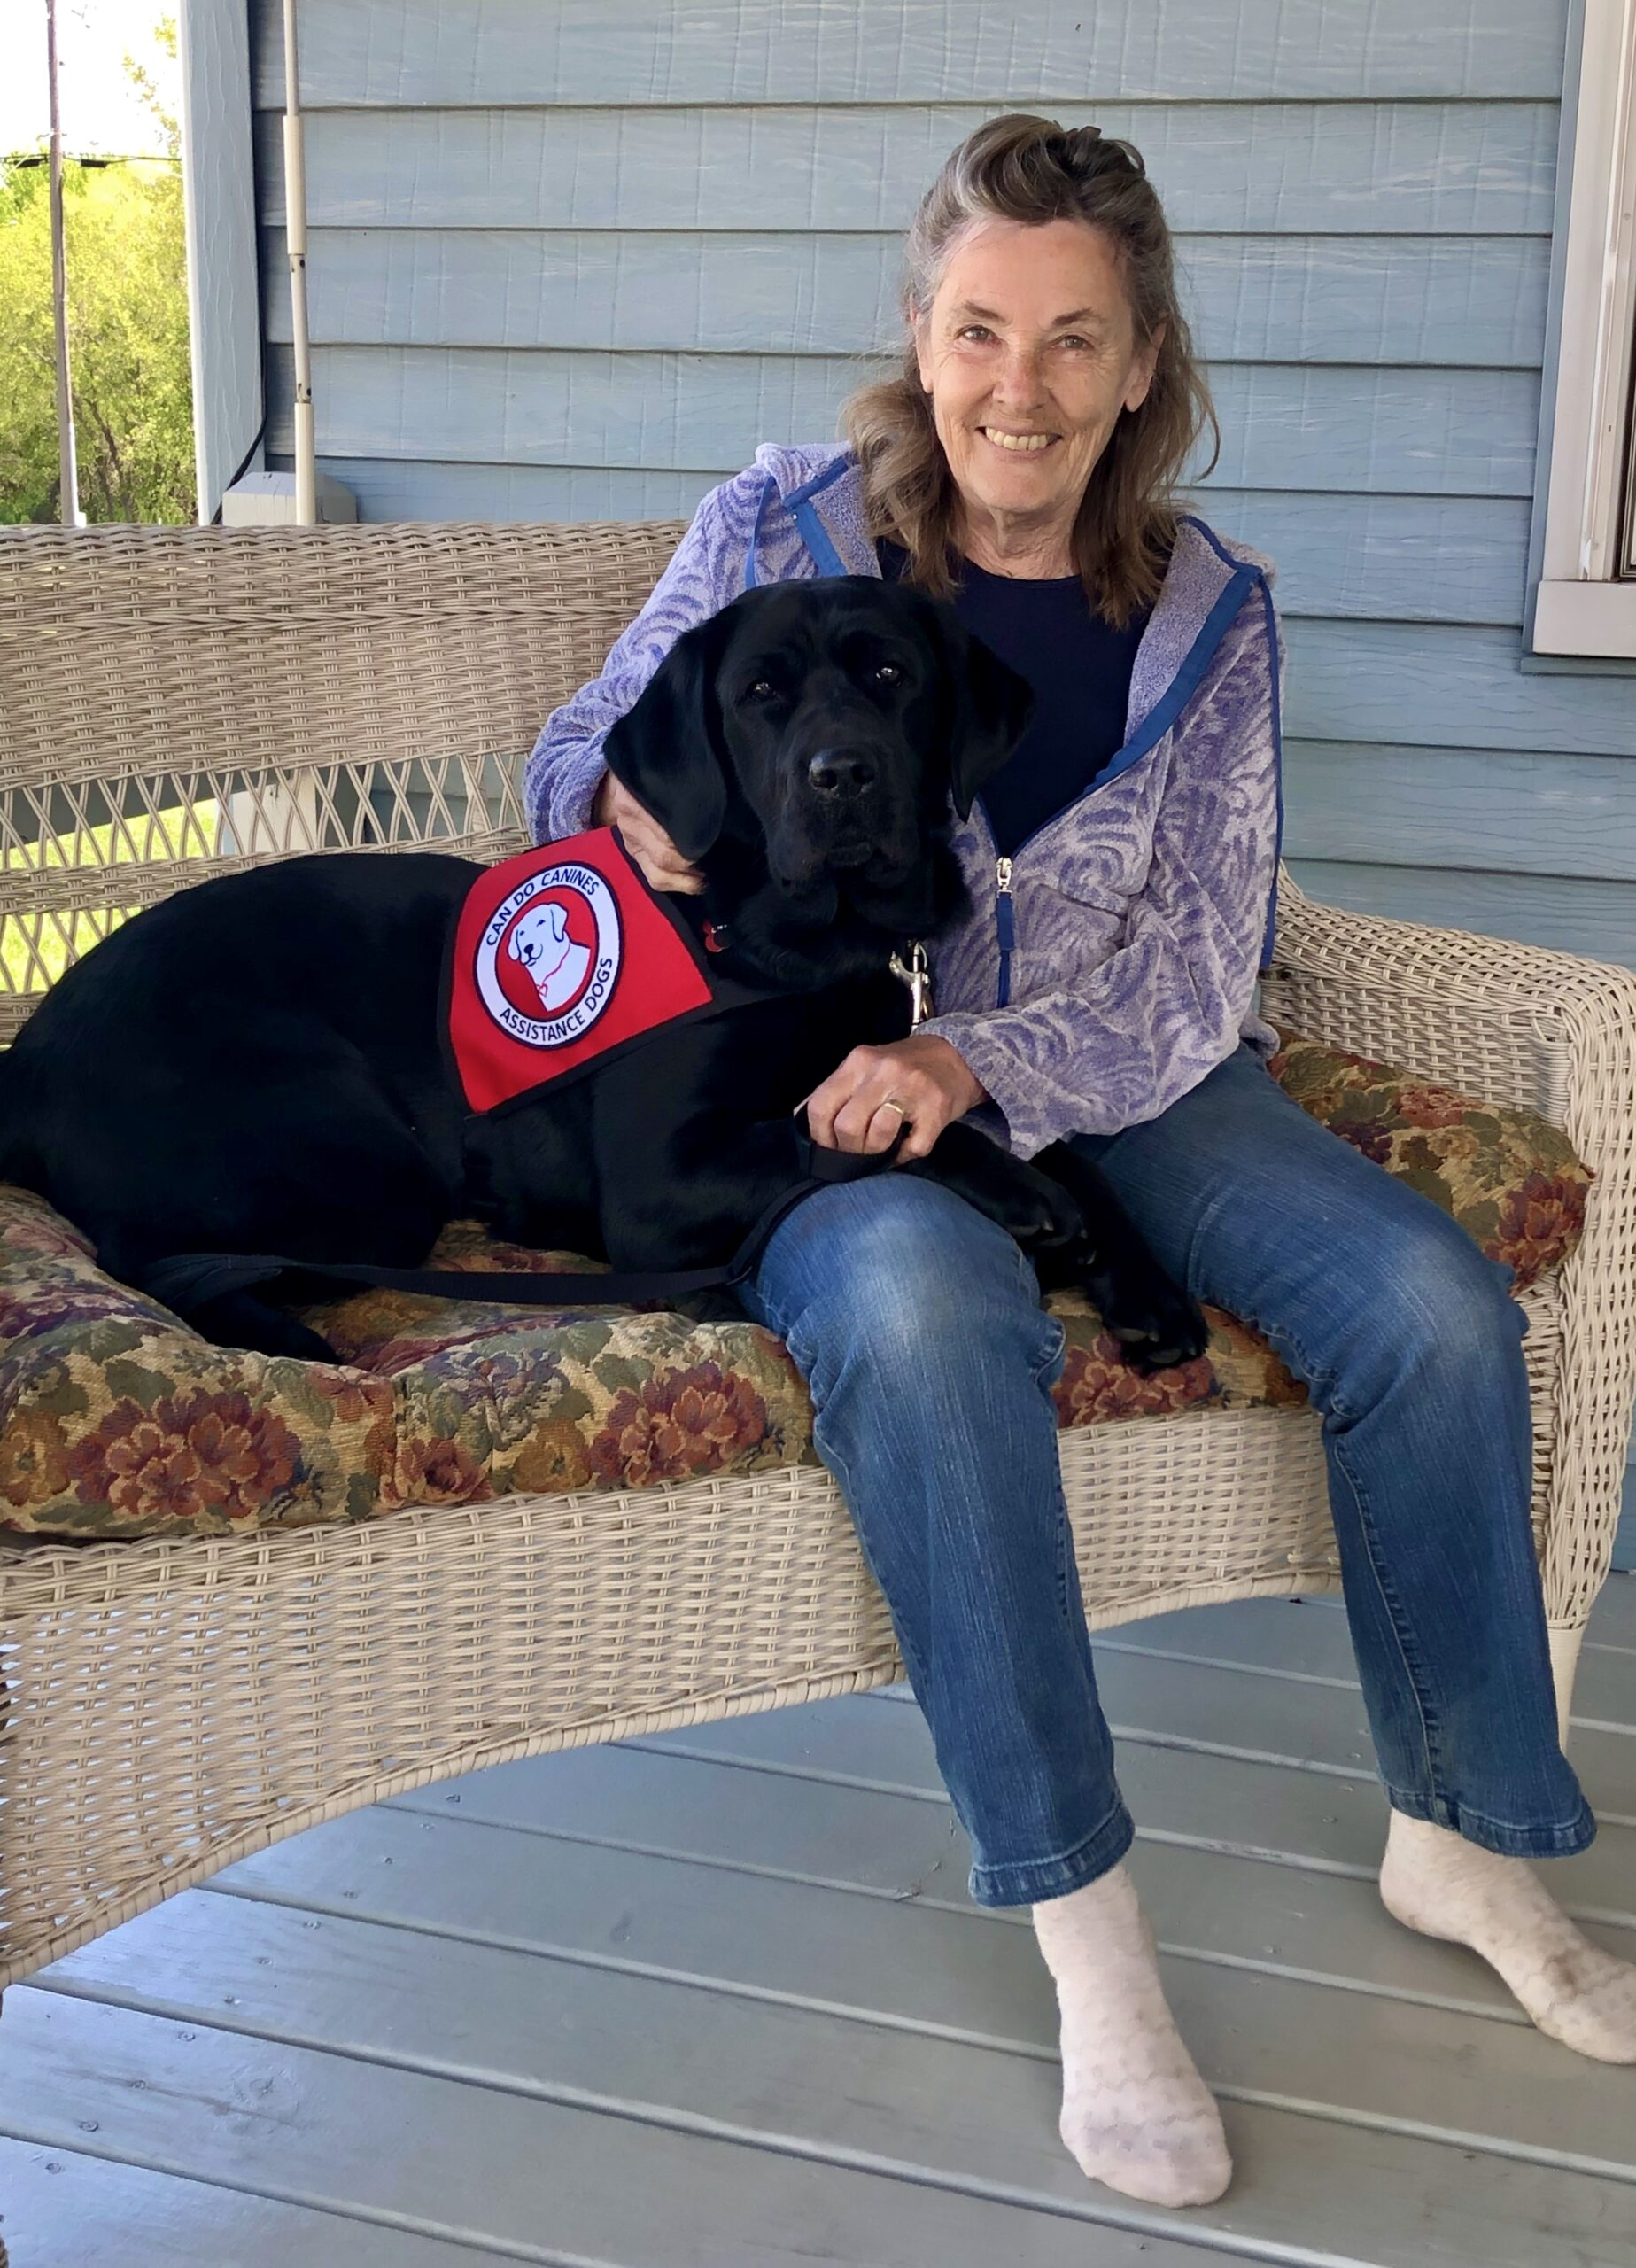 woman sitting on front step with black service dog lying across her lap